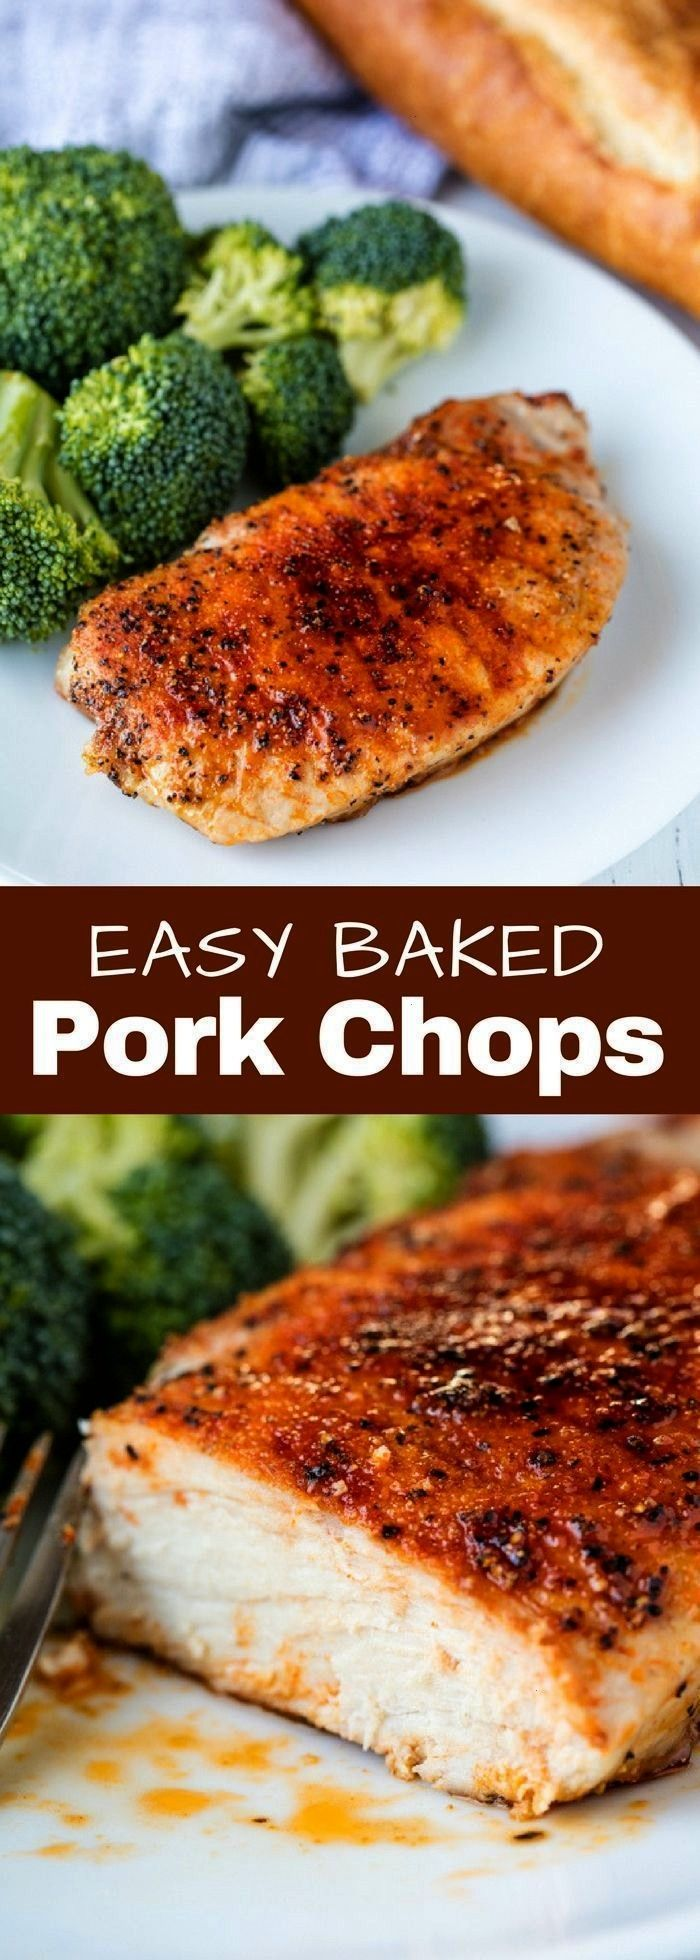 Baked Pork Chops These Easy Baked Pork Chops only require a few spices to really make them stand ou